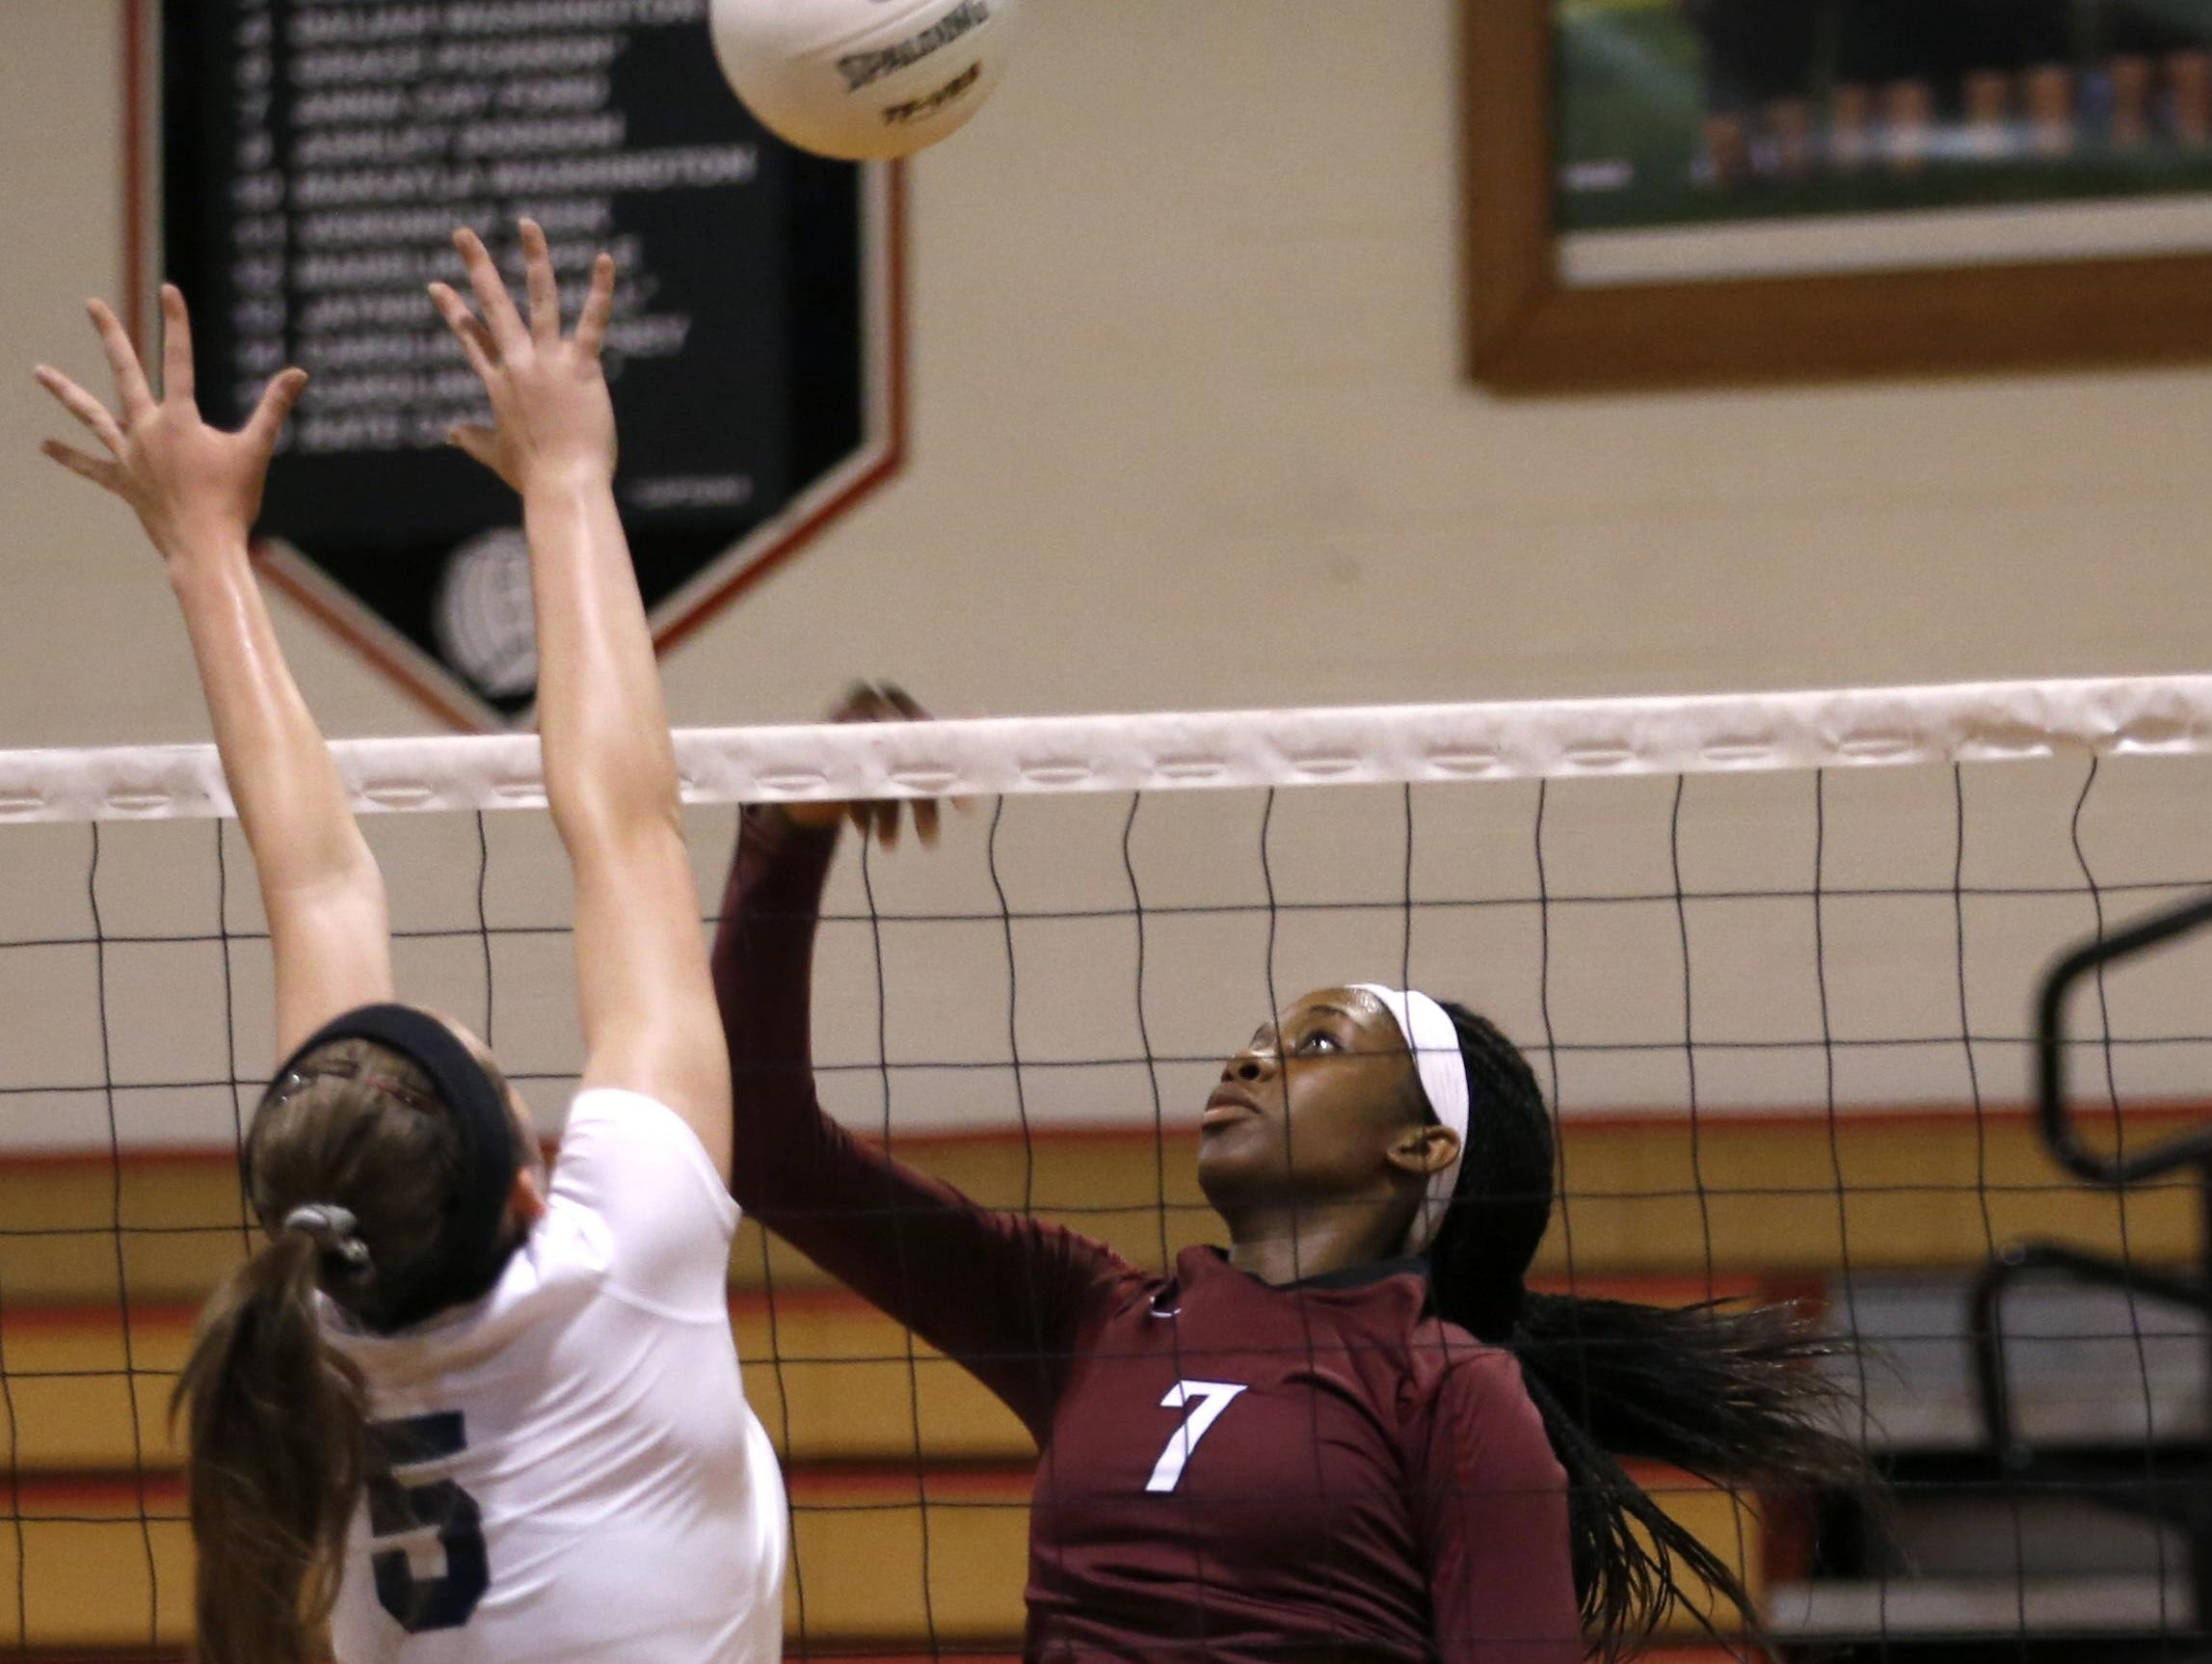 Florida High's Nylah Demps racked up 34 kills, 17 digs and 12 blocks as the Seminoles went 3-2 at the Battle of the Borders Tournament.